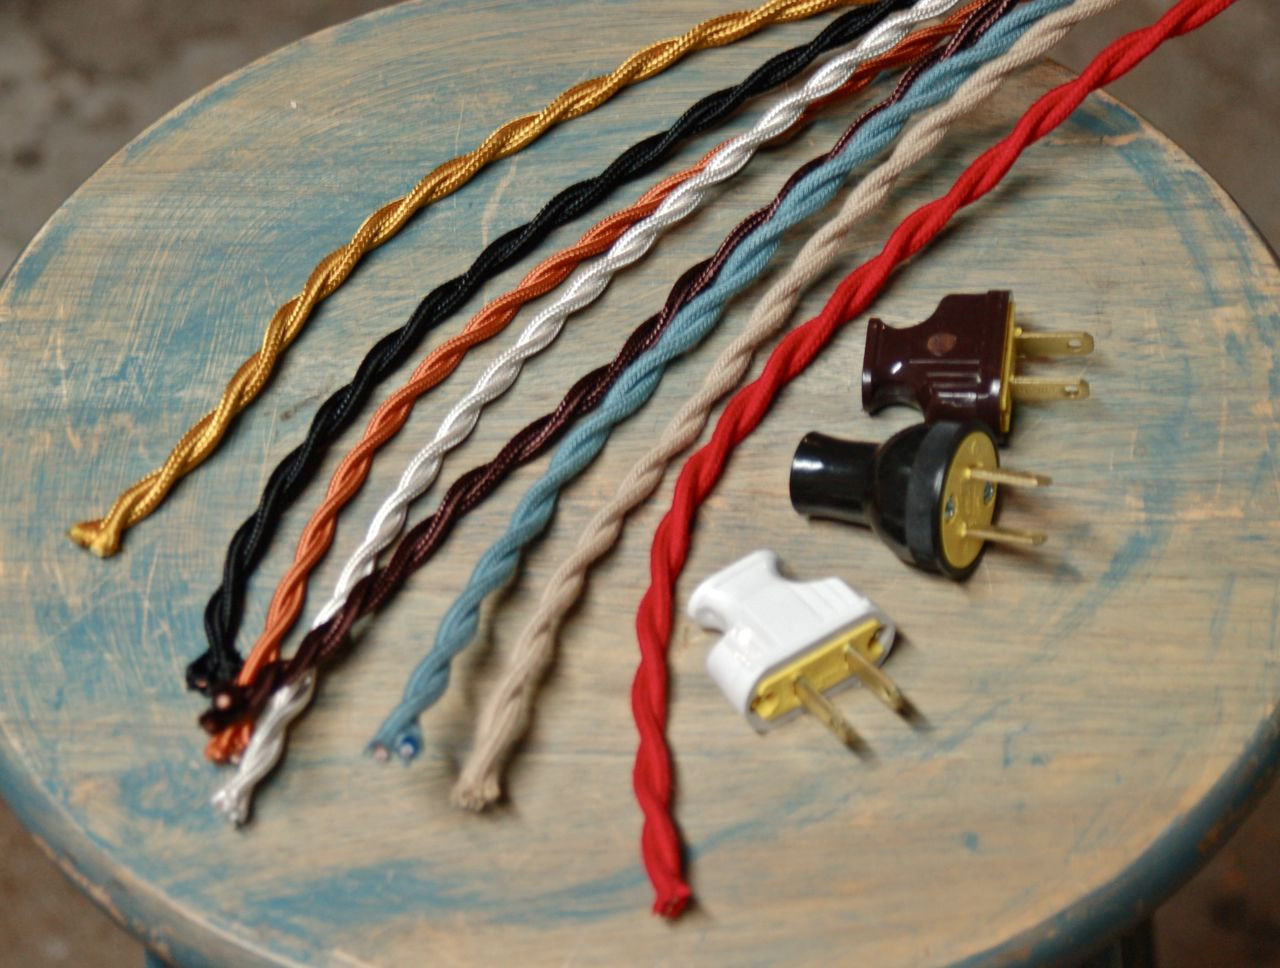 Tremendous Vintage Style Twisted Cloth Covered Wire With Plug Attached 8 Wiring 101 Taclepimsautoservicenl